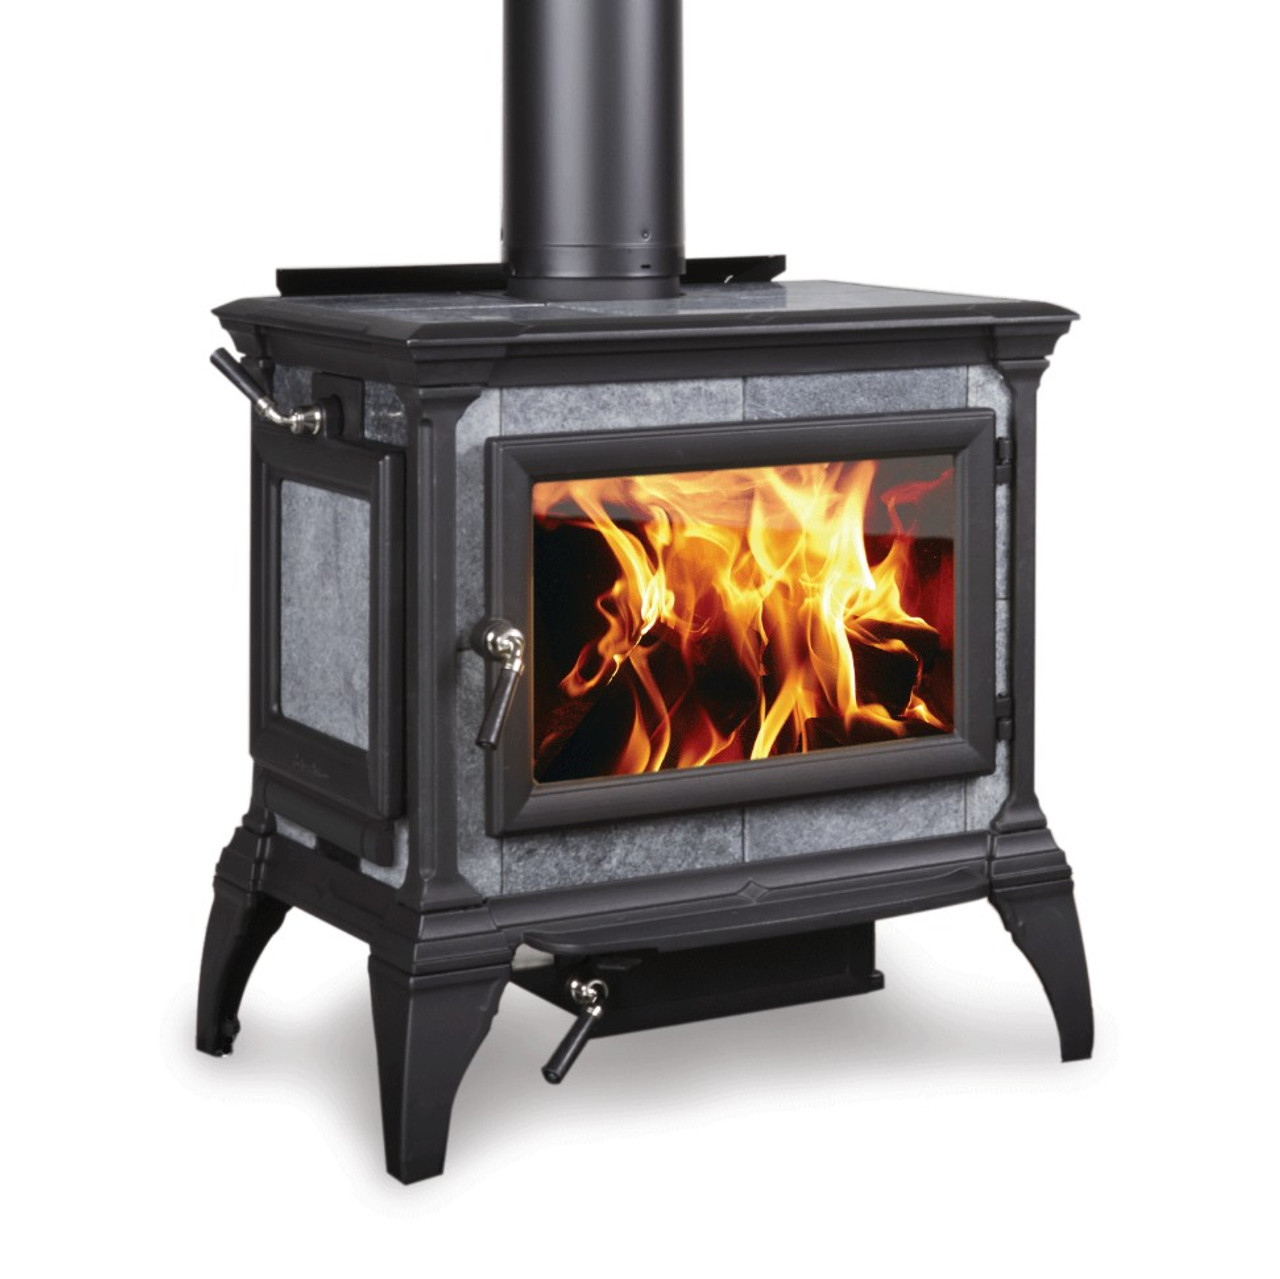 Hearthstone Heritage 8024 Wood Stove in Matte Black